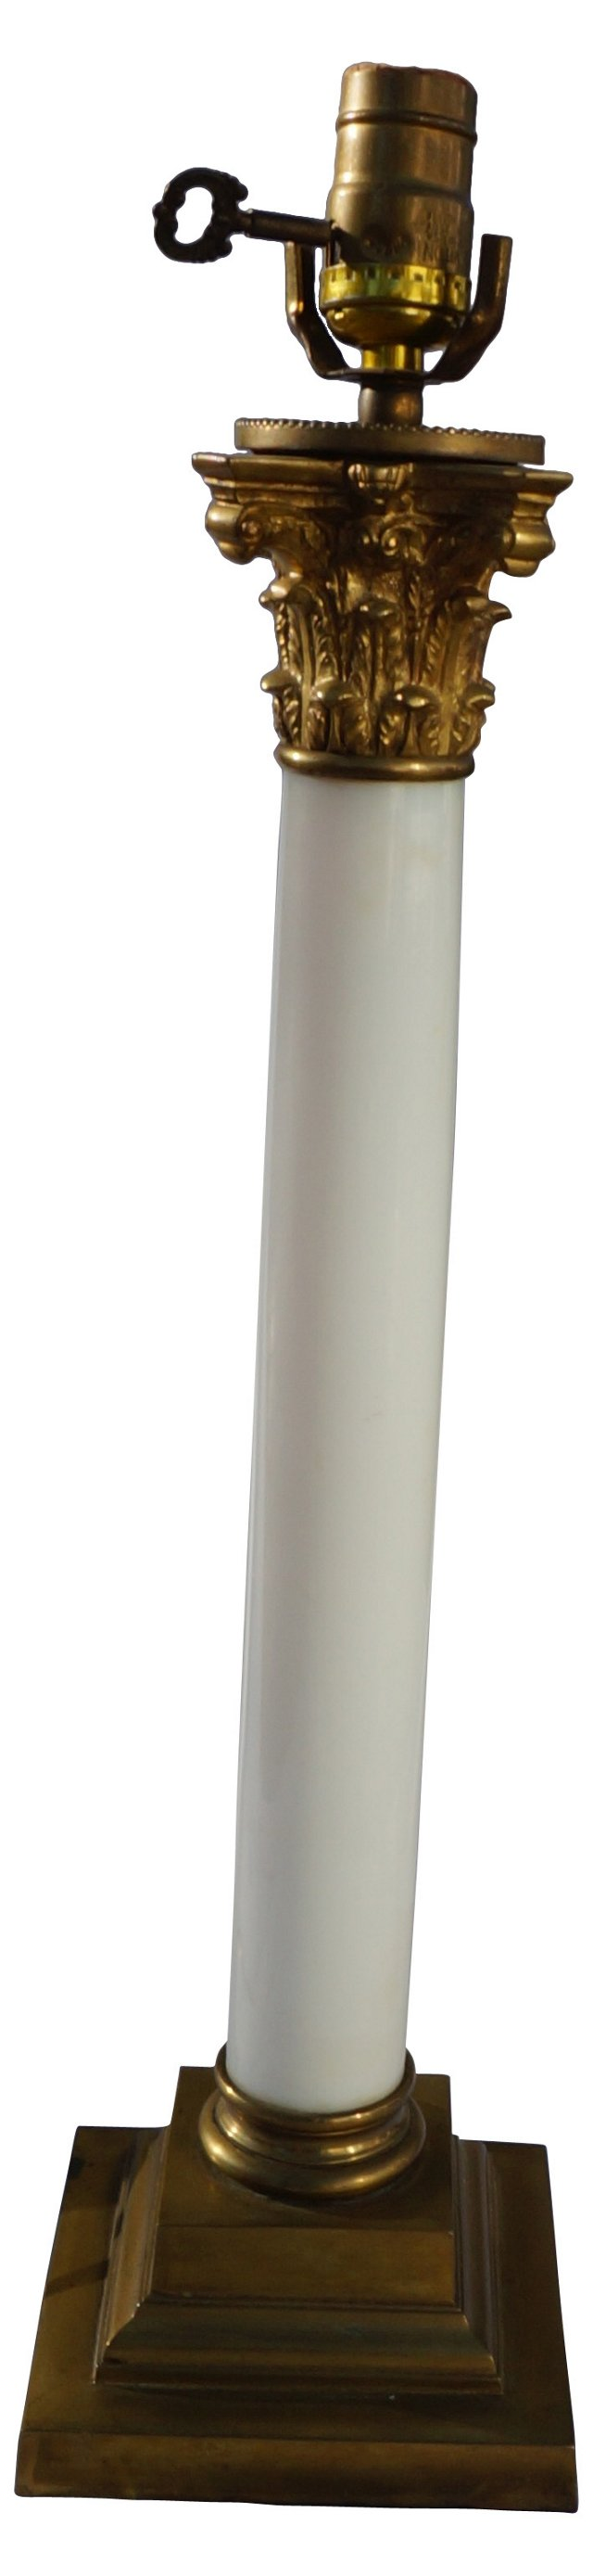 Hollywood Regency-Style Column Lamp